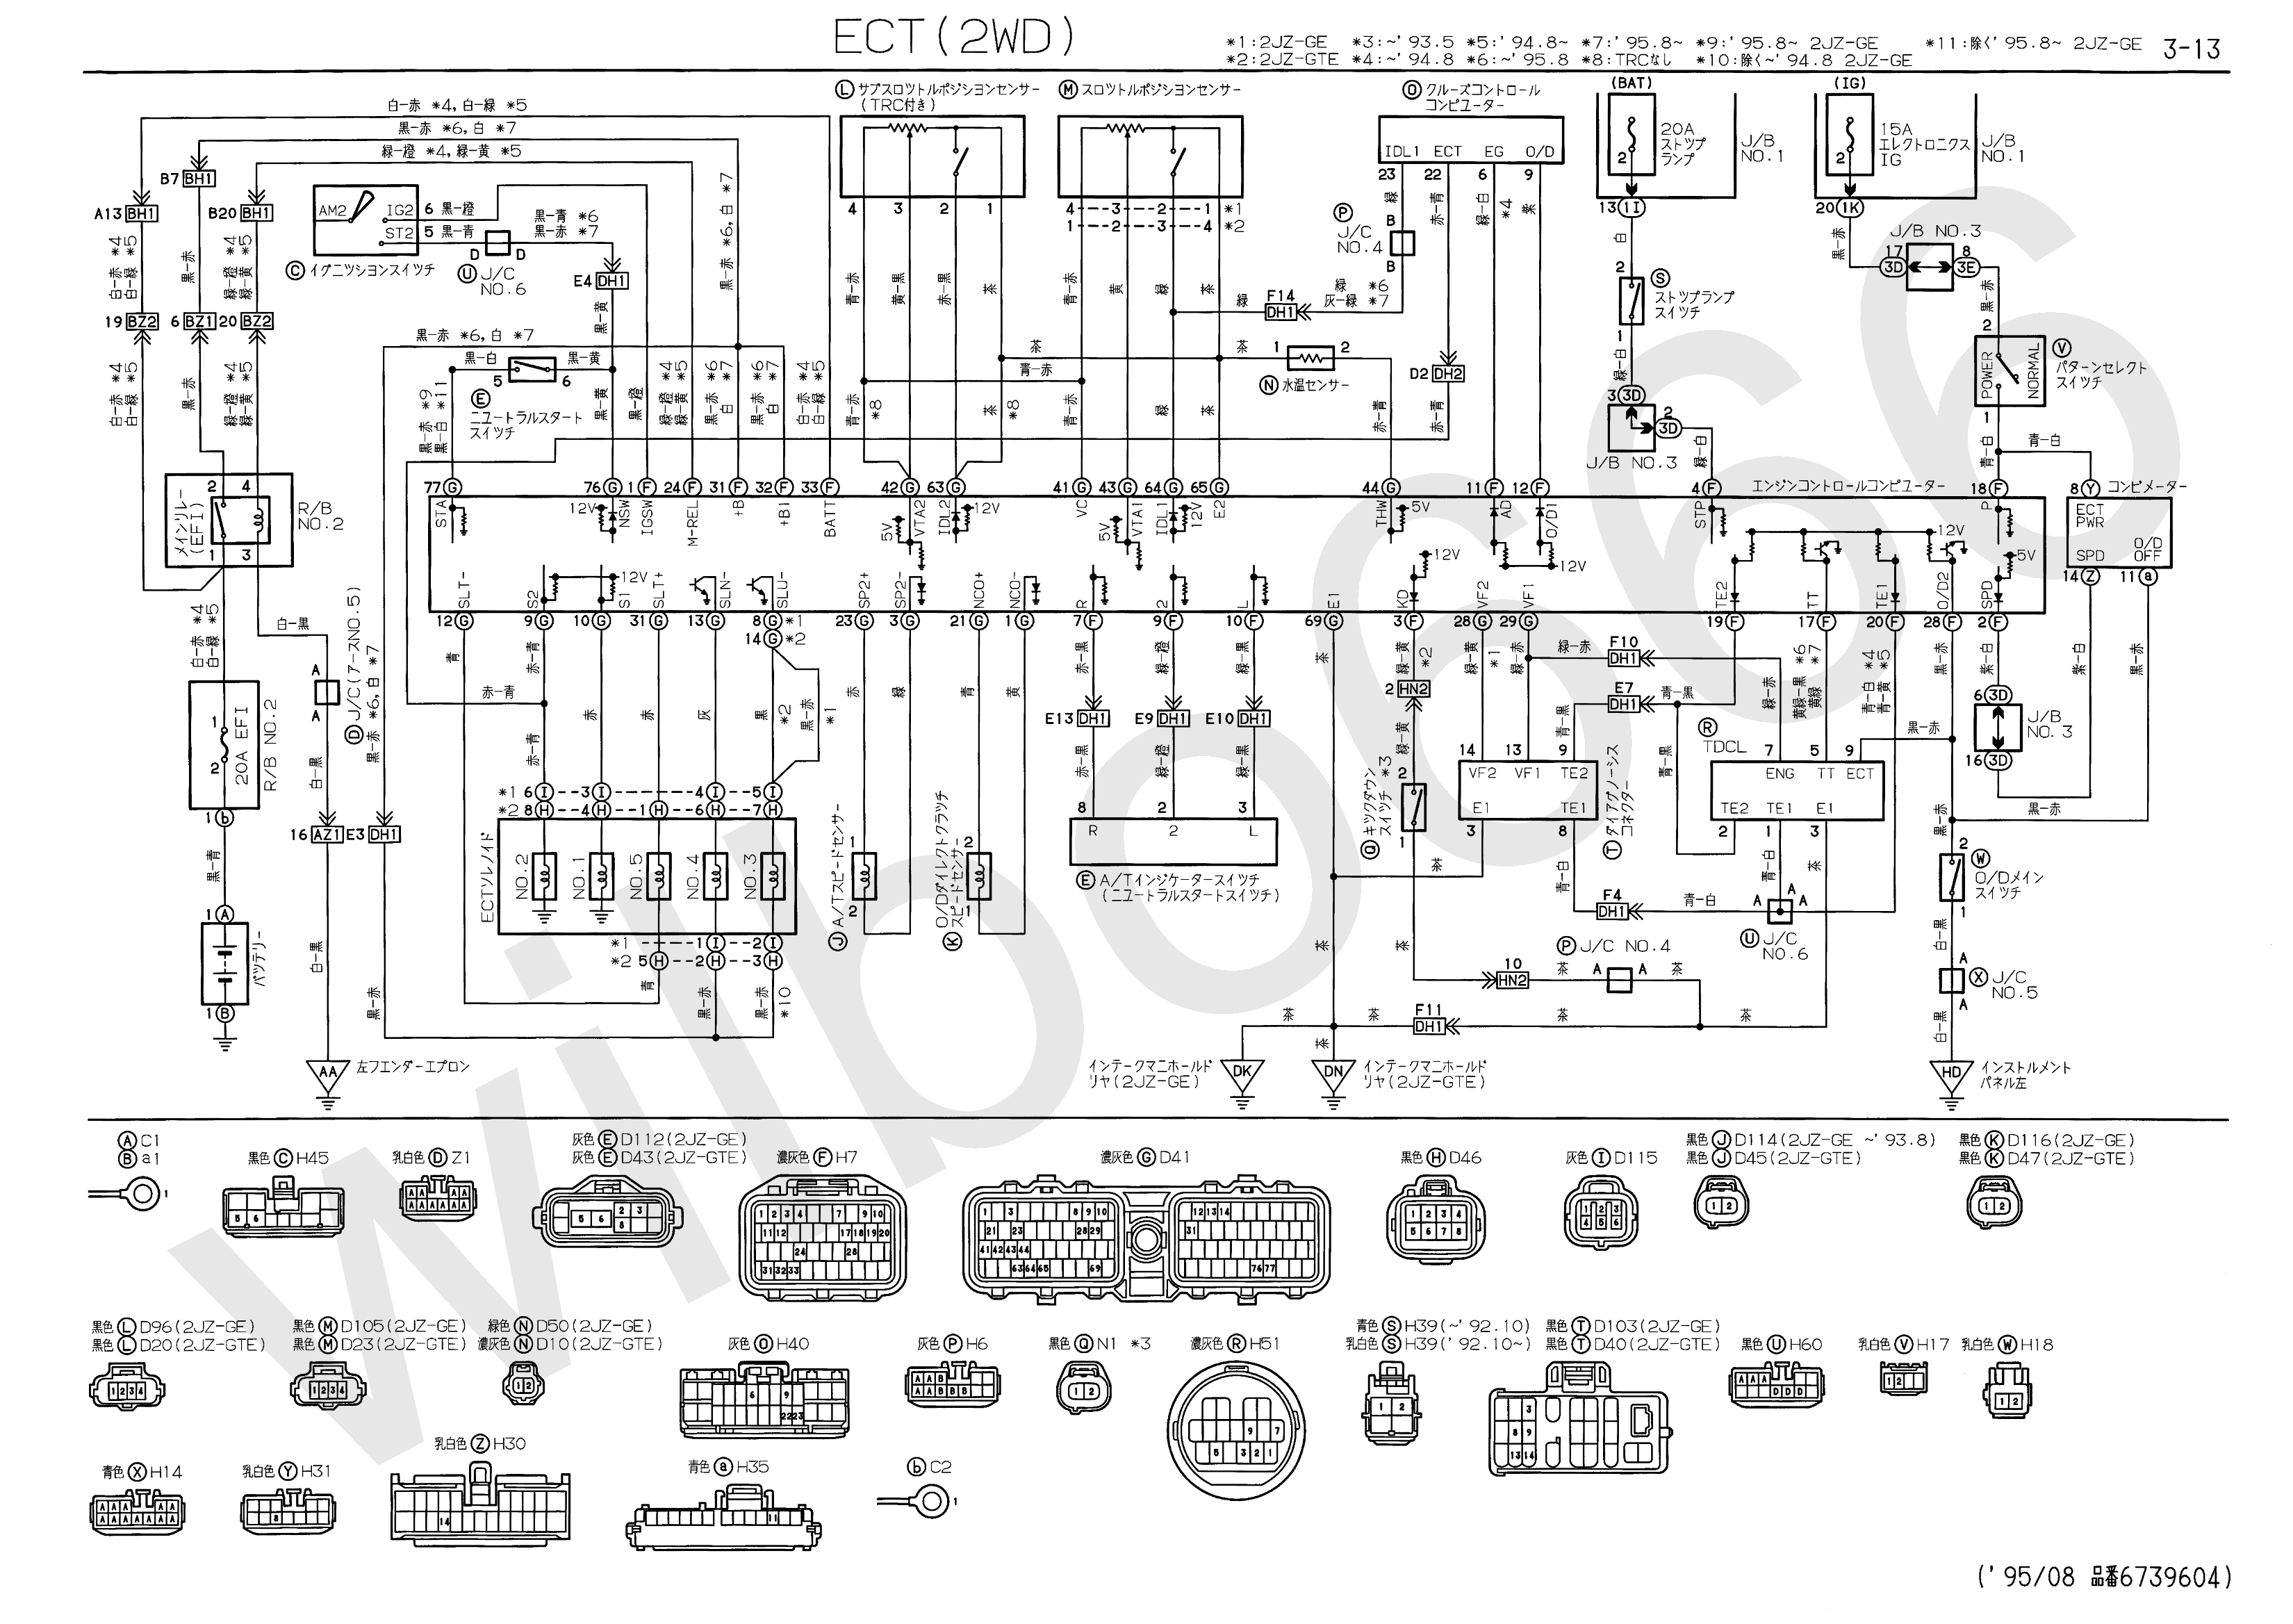 JZS14%23%2C UZS14%23 Electrical Wiring Diagram 6739604 3 13 2000 chevy cavalier wiring diagram needed chevrolet forum,2004 Chevy Cavalier Wiring Diagram